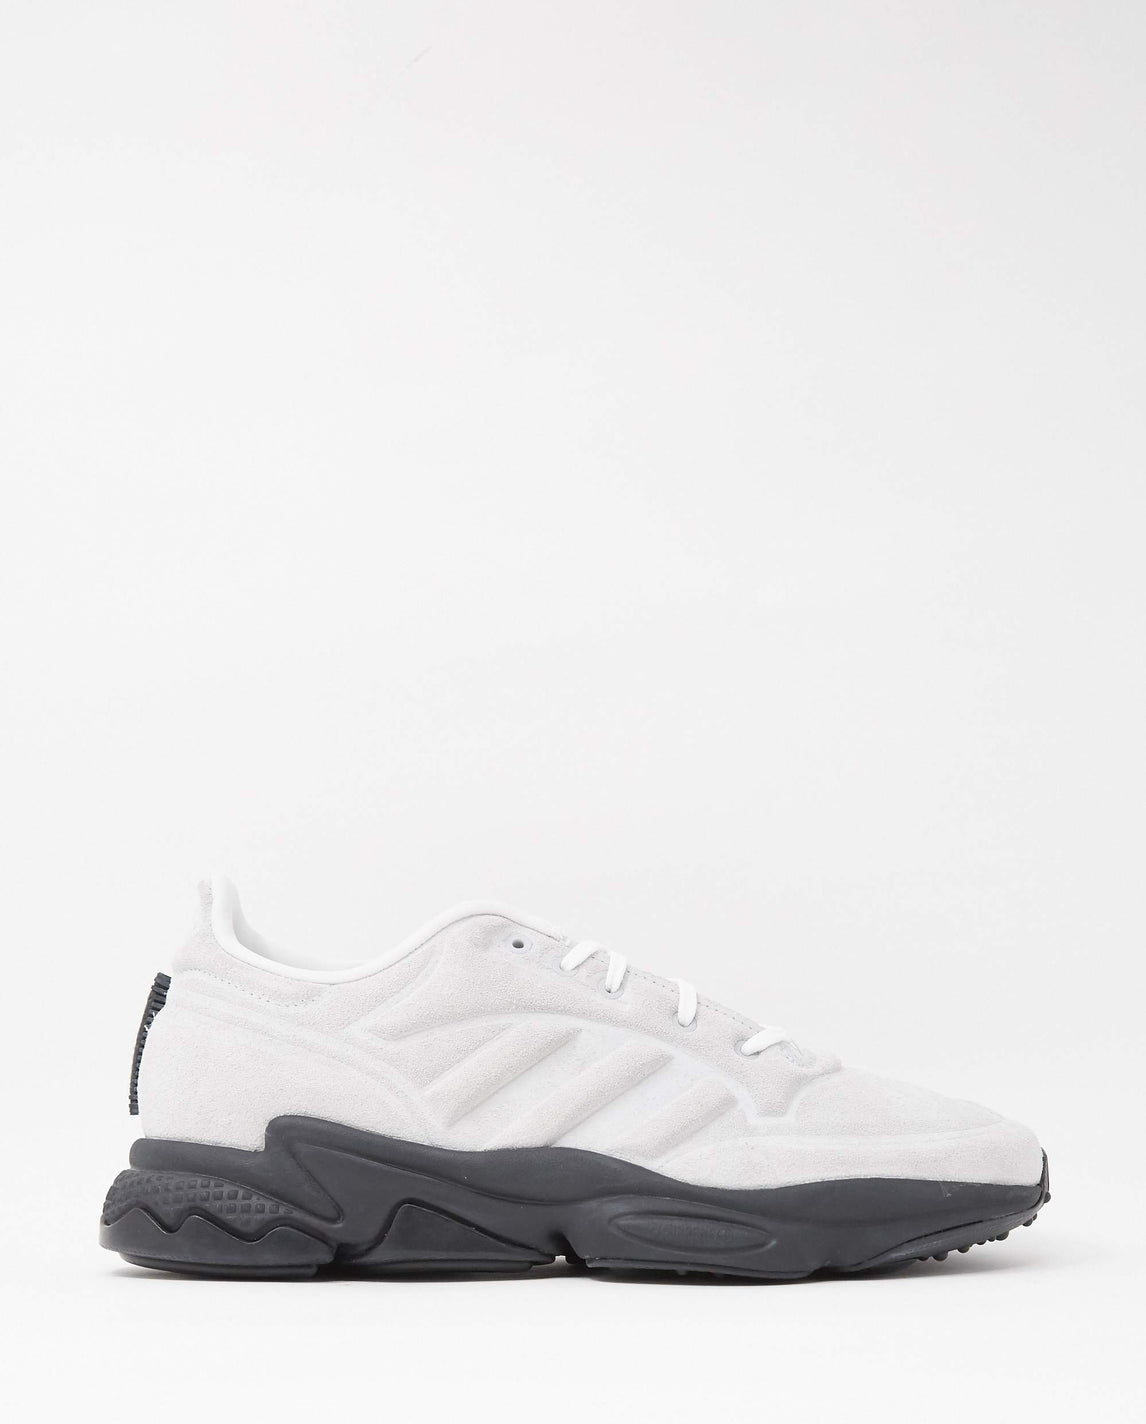 Kontuur II - Grey MENS ADIDAS BY CRAIG GREEN